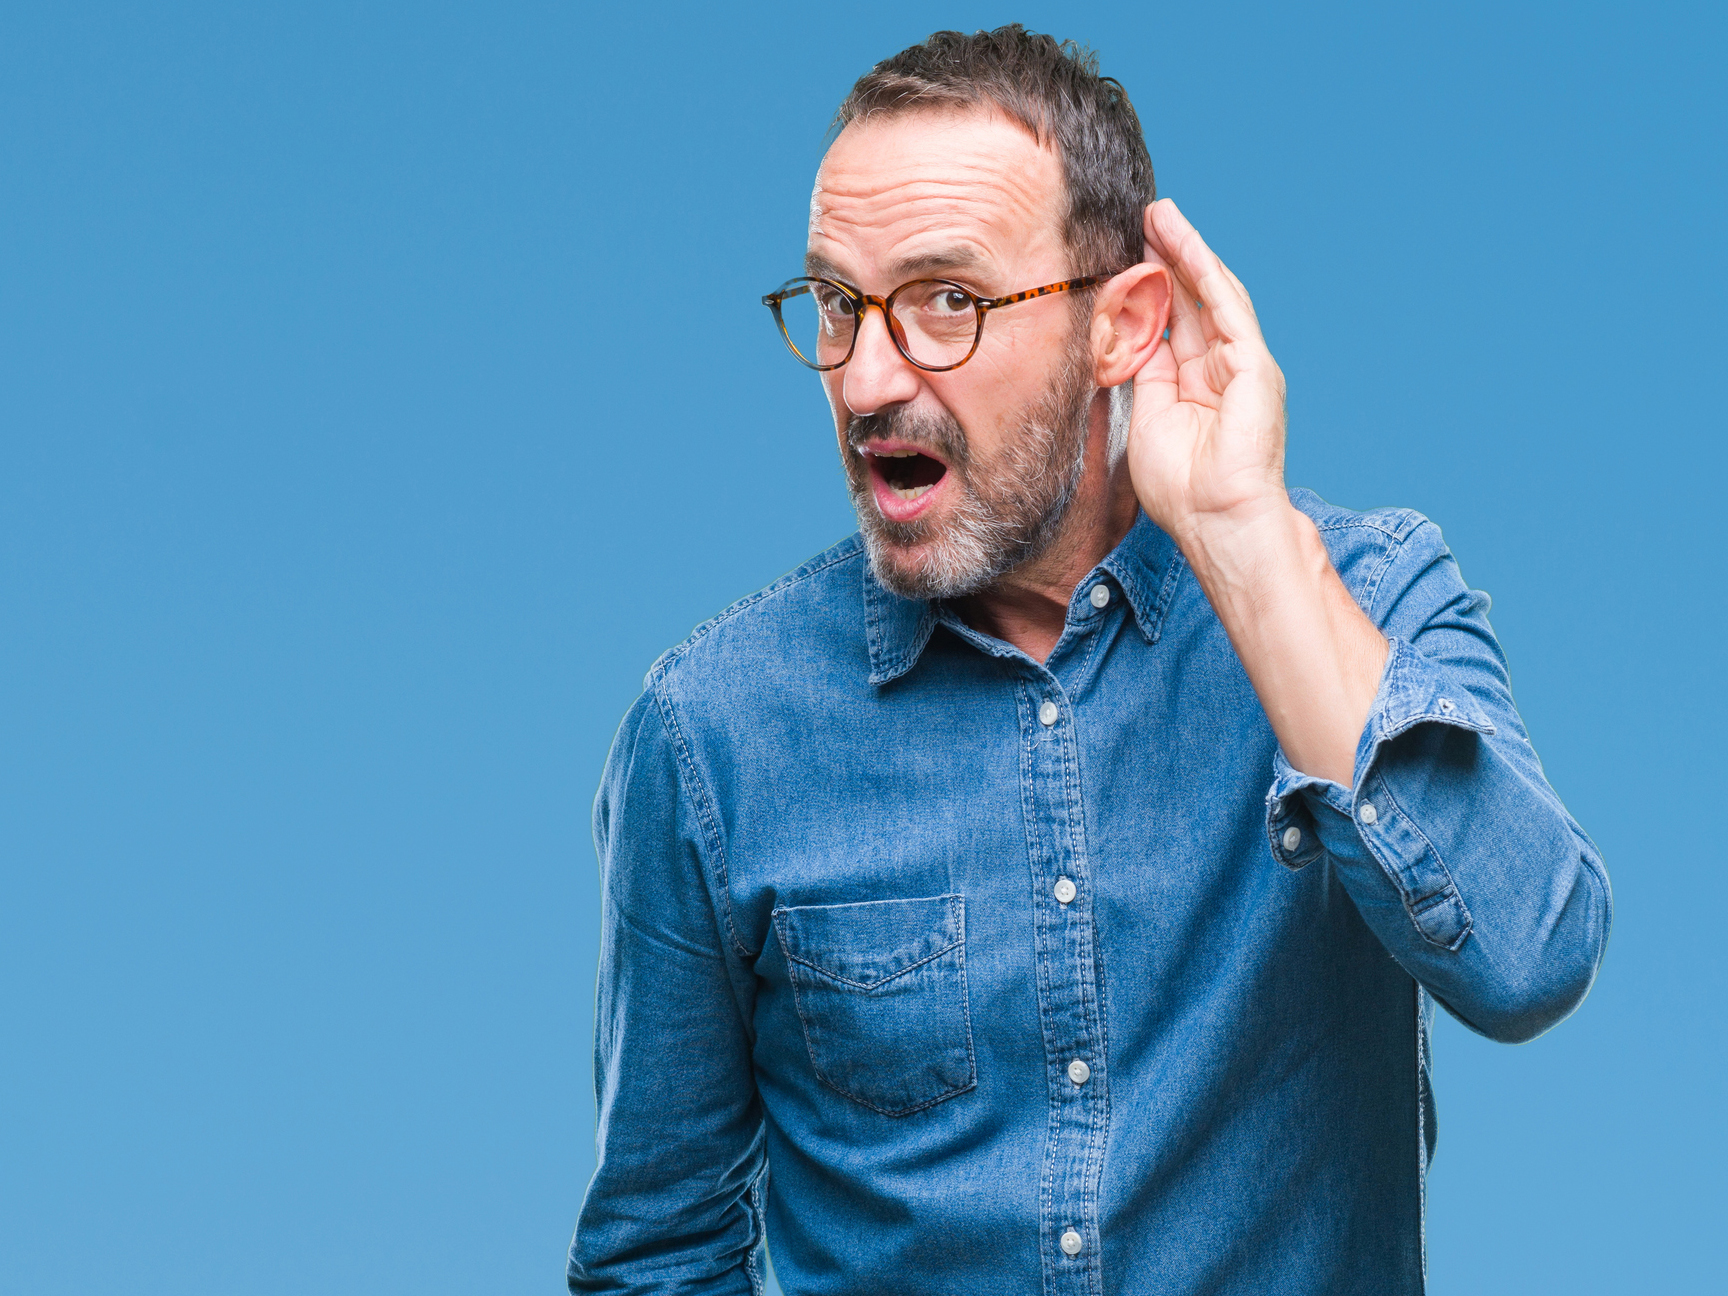 How to use white noise to improve your hearing